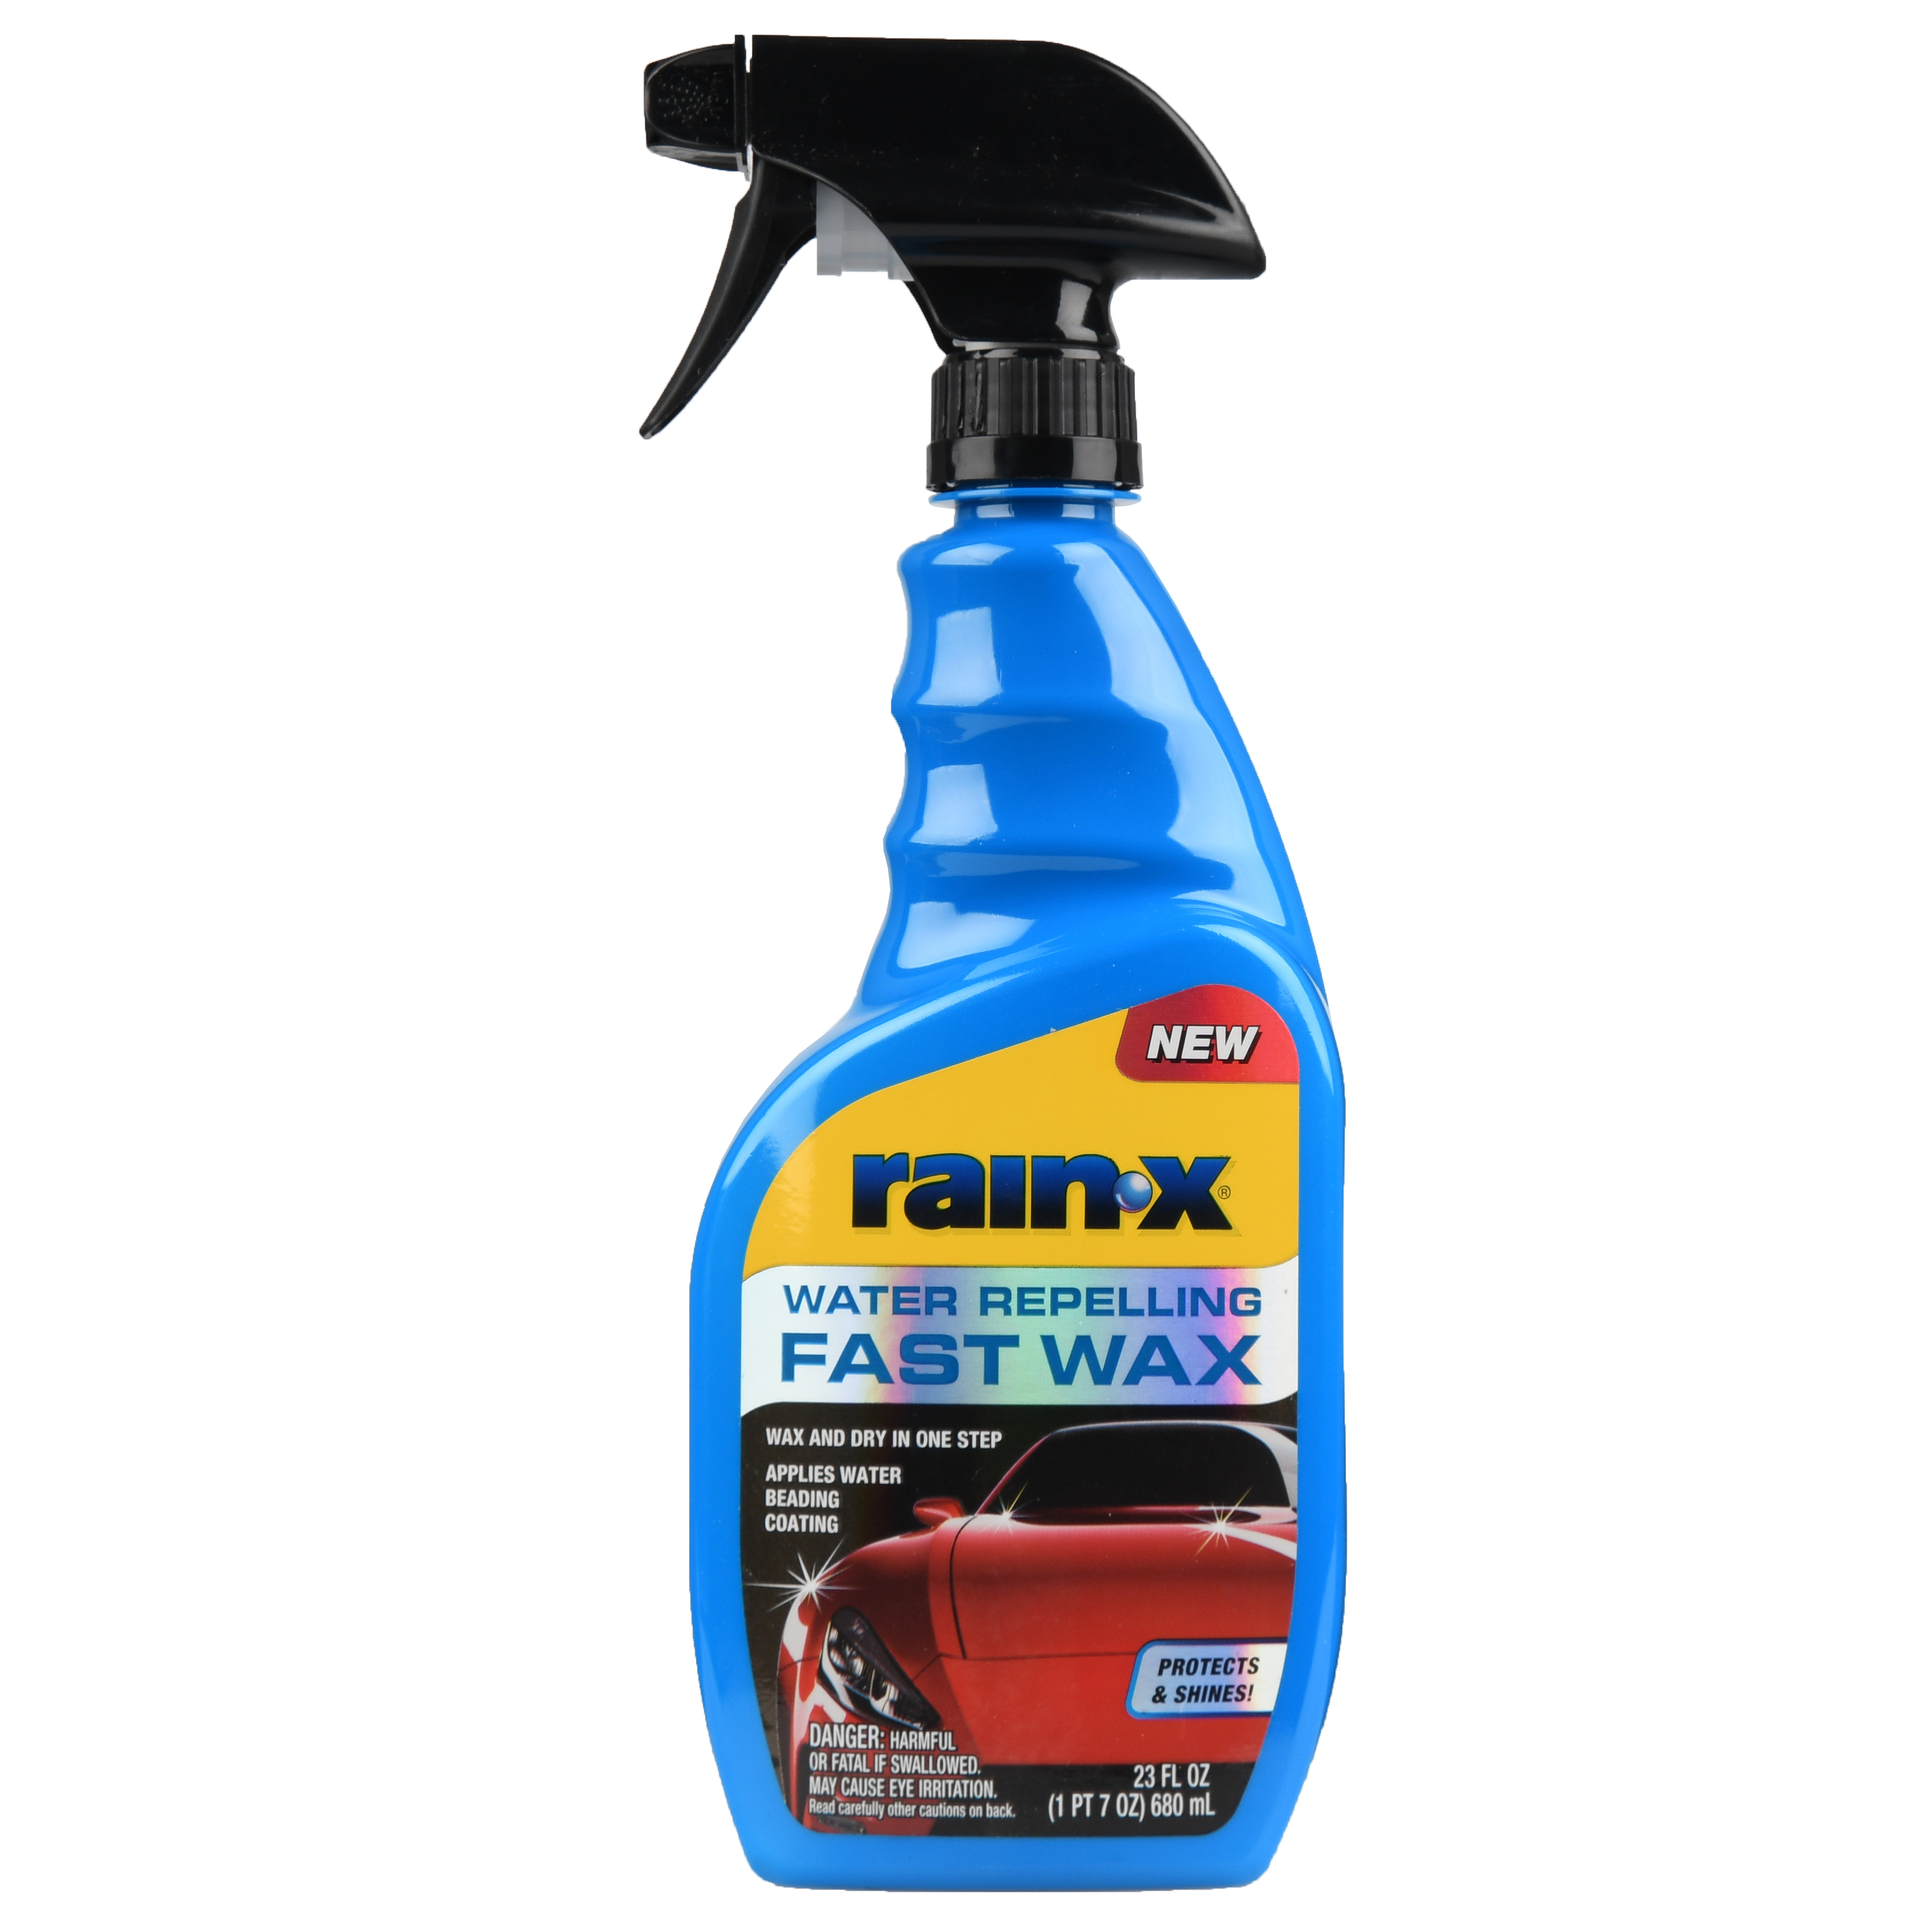 NEW! Rain-X 2-IN-1 Spray Fast Wax and Water Repellent - 620118